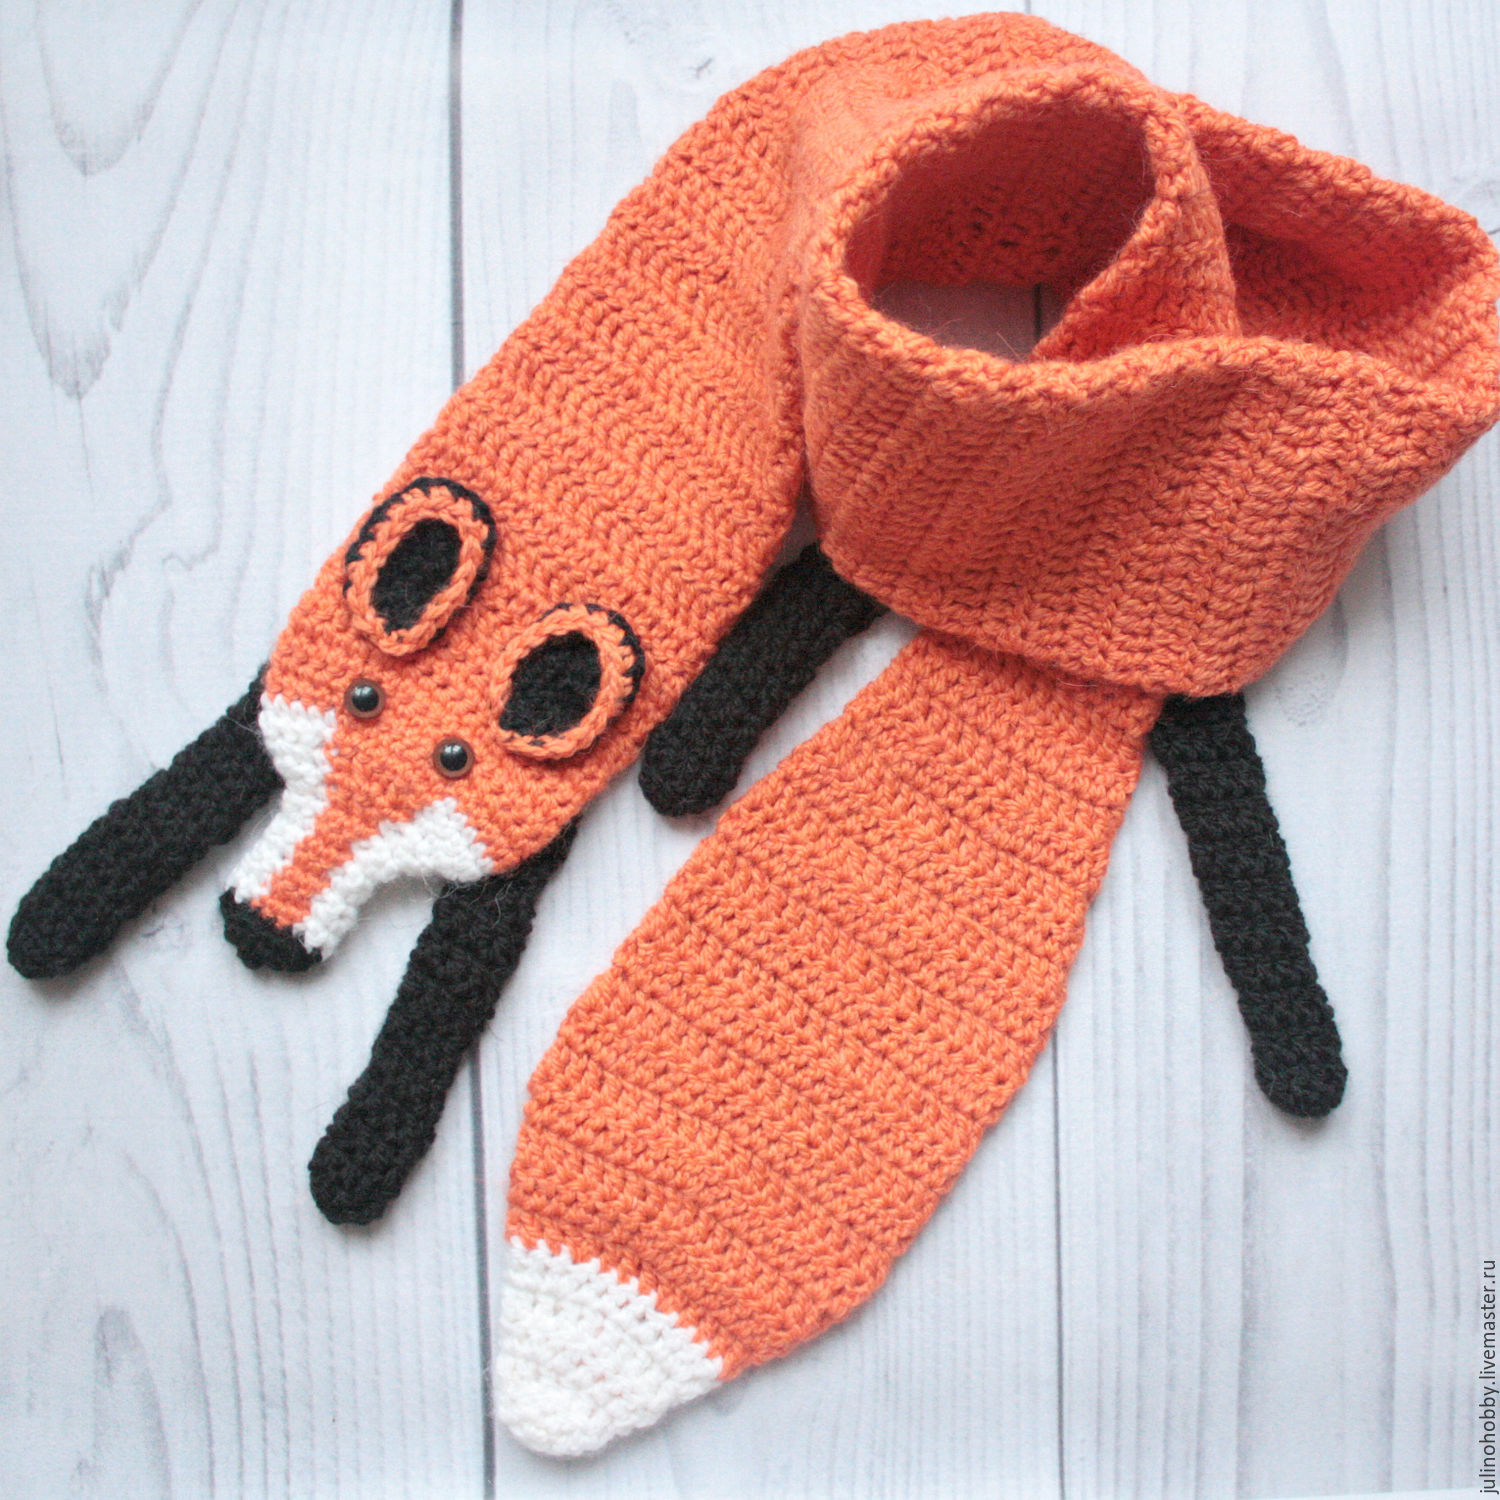 Scarf Fox Shop Online On Livemaster With Shipping 7ziprcom Moscow